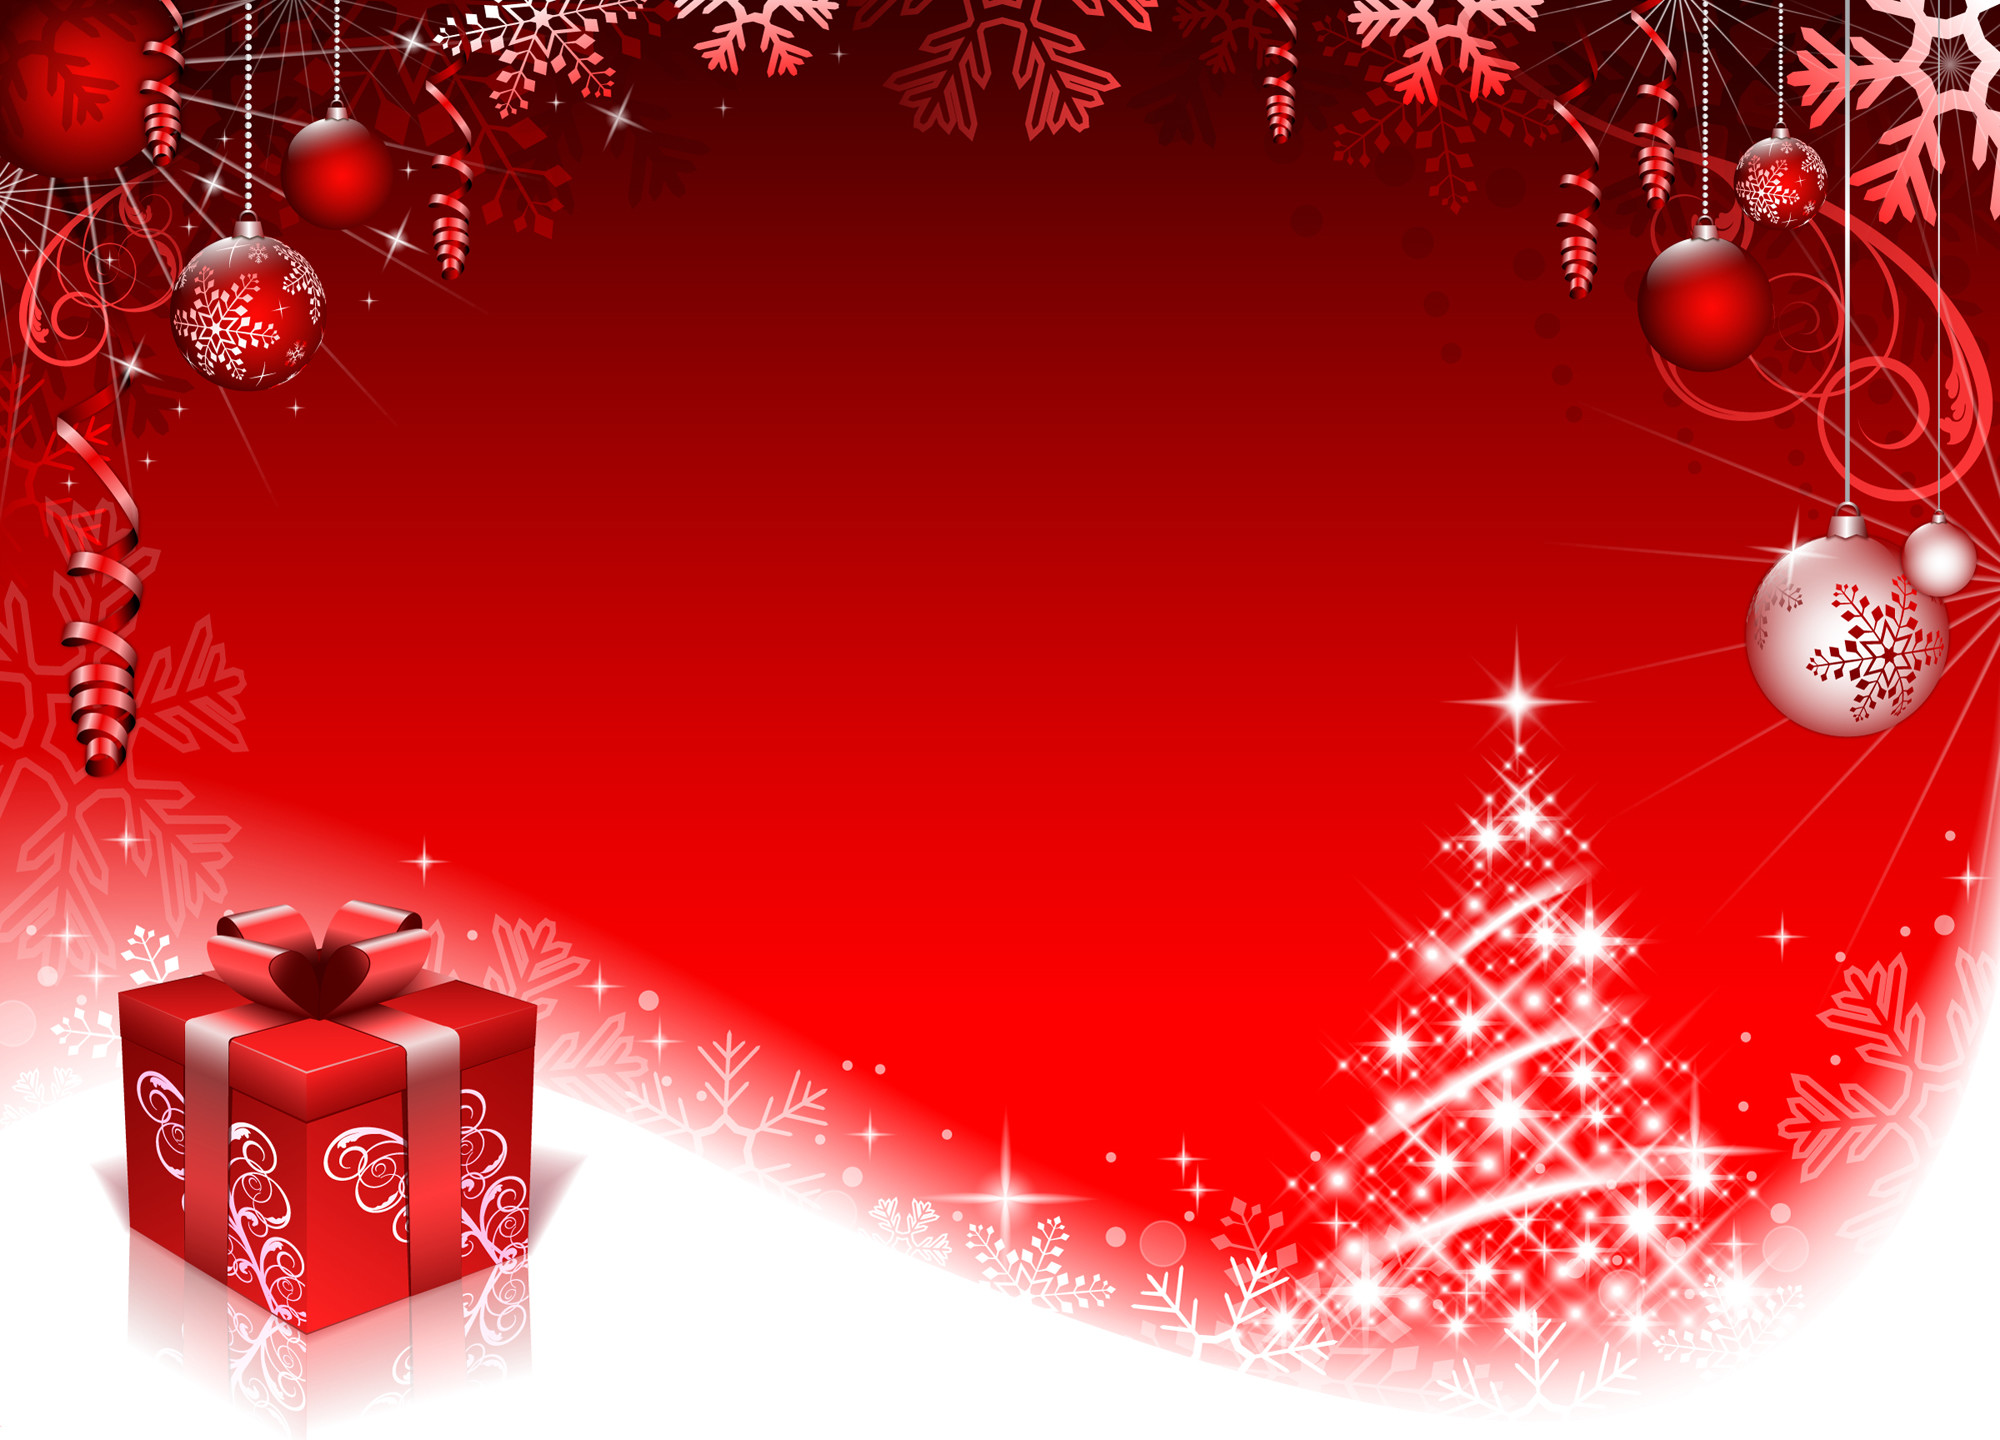 Christmas Backgrounds for Photoshop | Wallpapers9